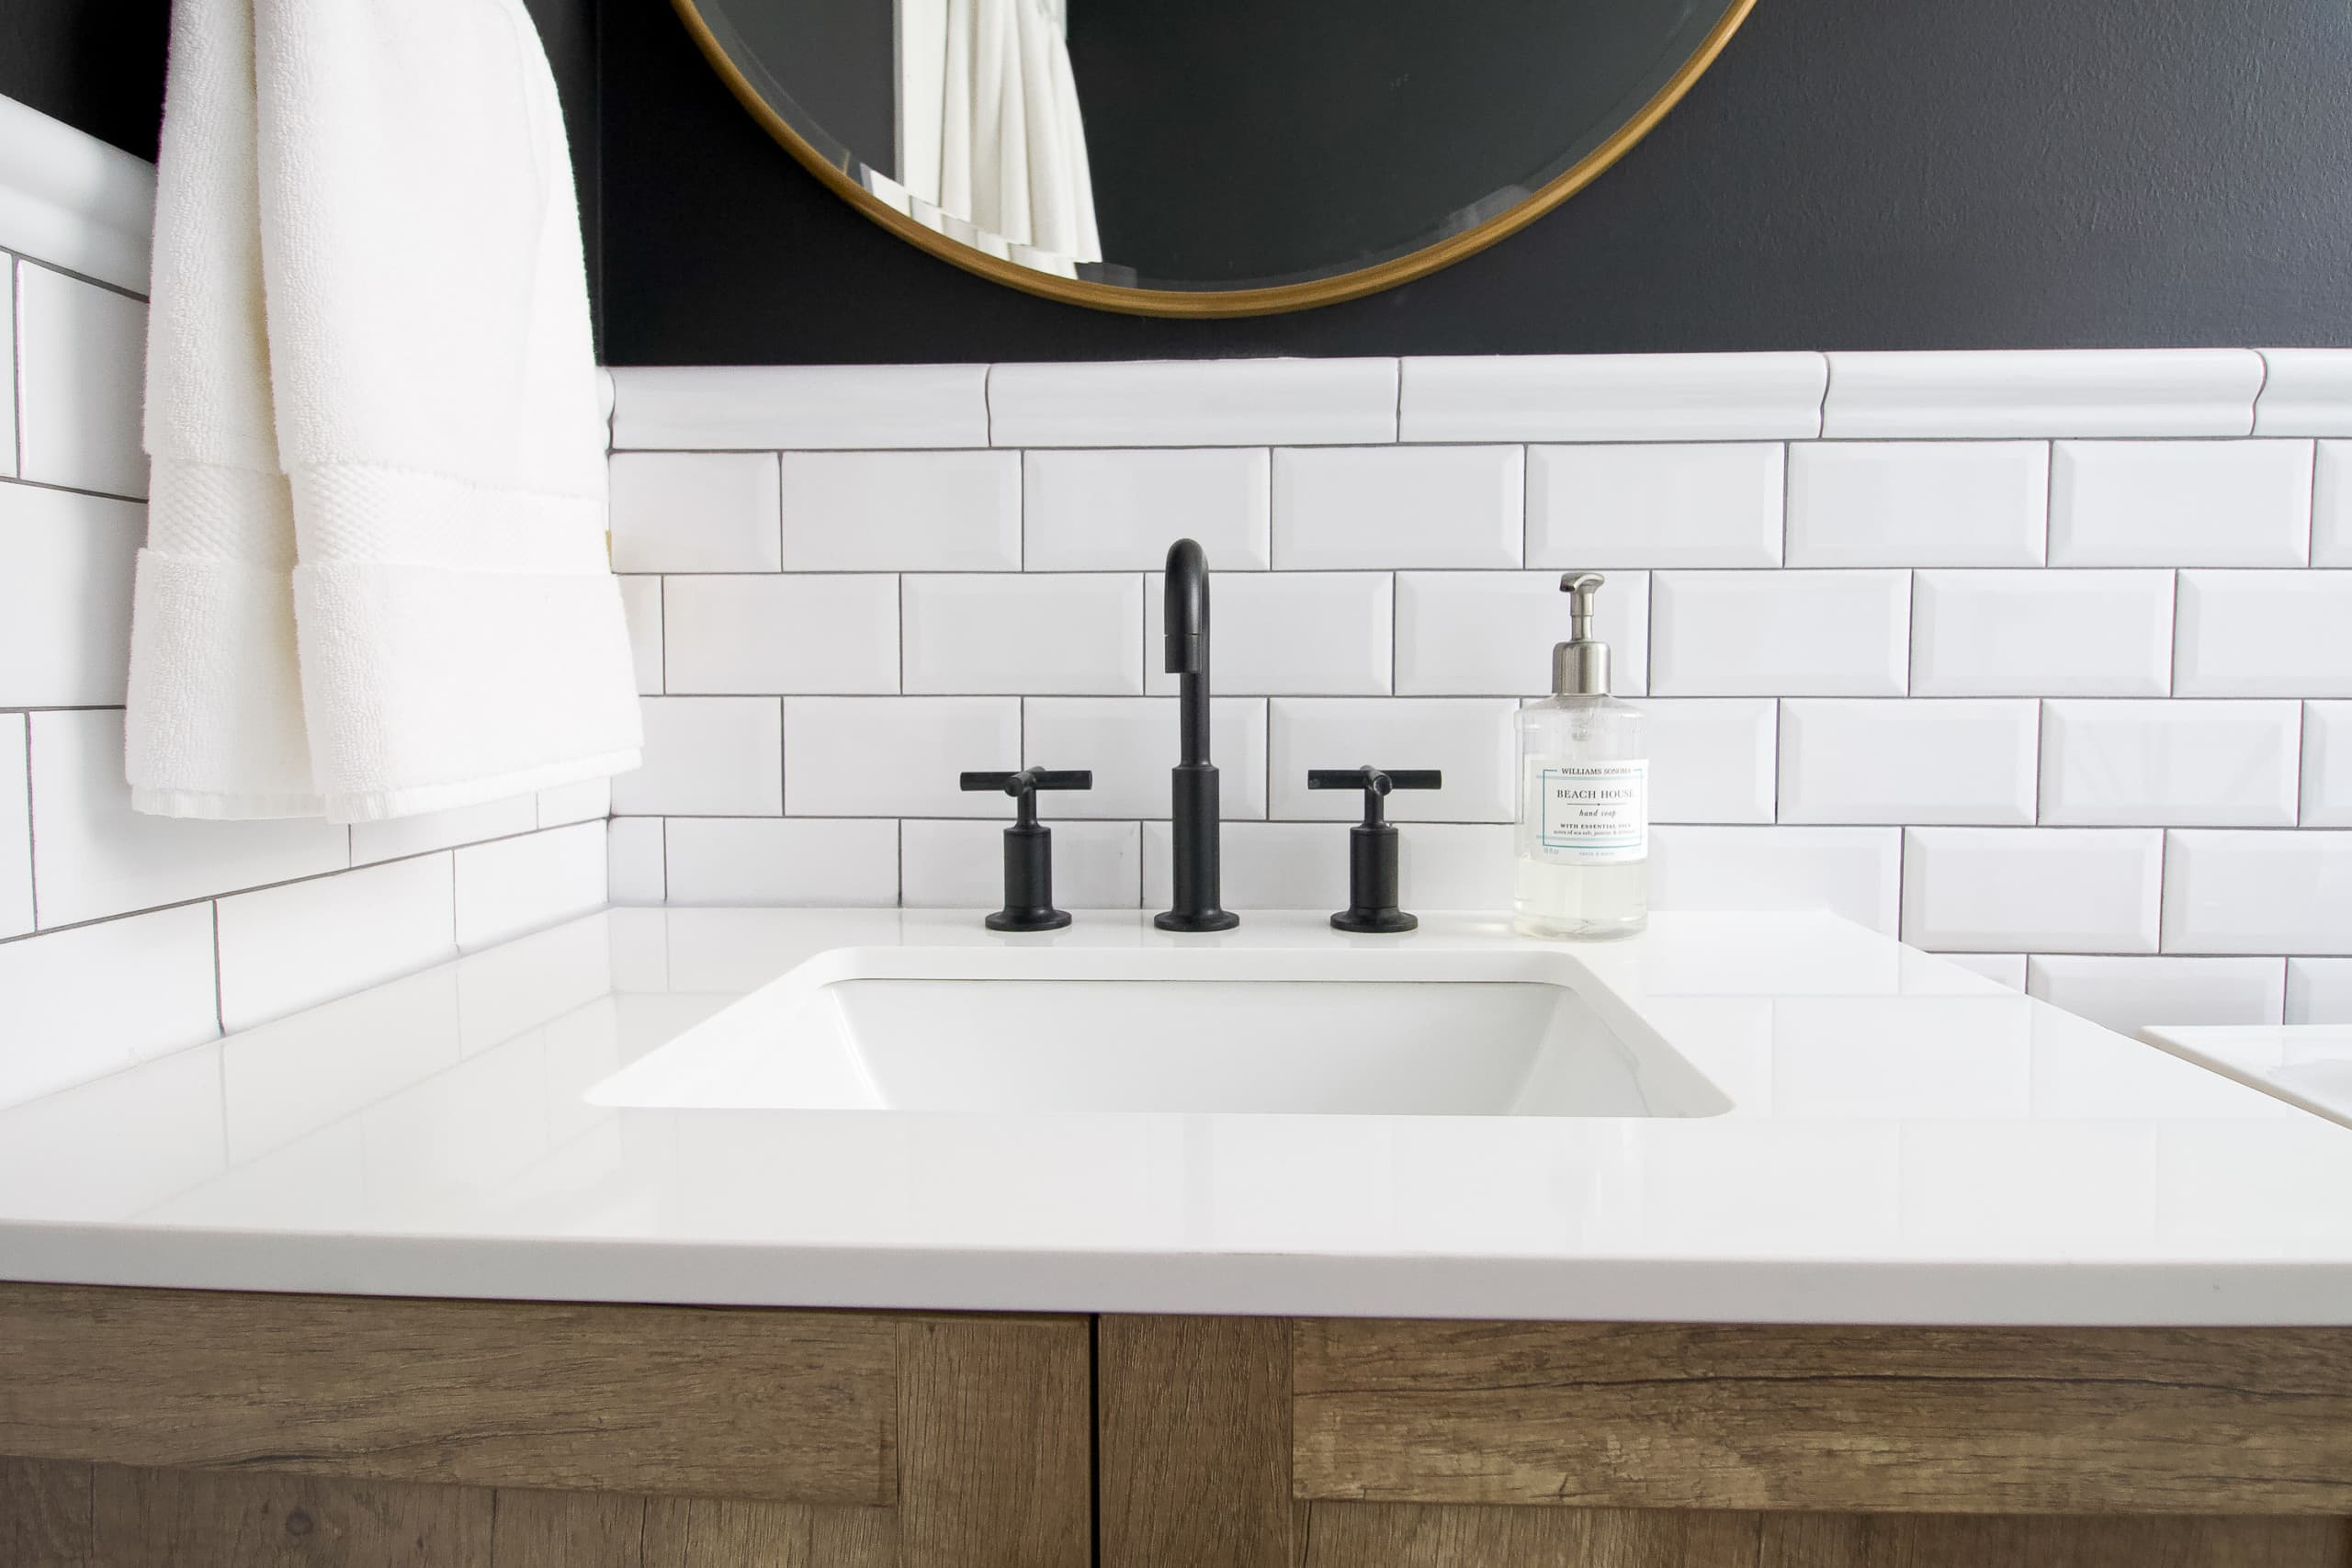 Using a black faucet in this black and white bathroom remodel